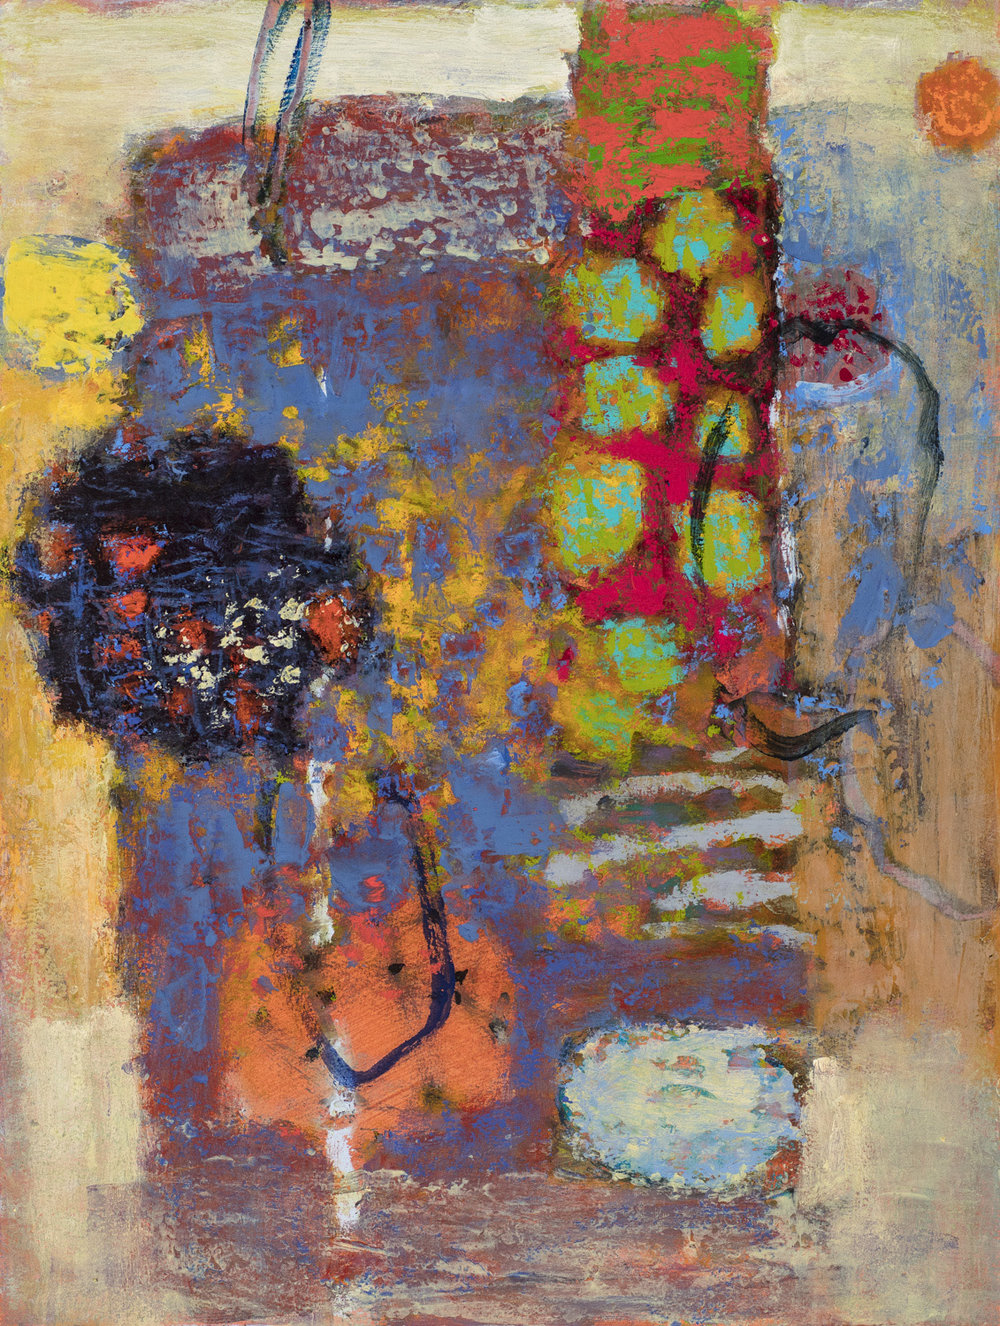 The Mix  | oil on fine art archival paper | 25 x 19"